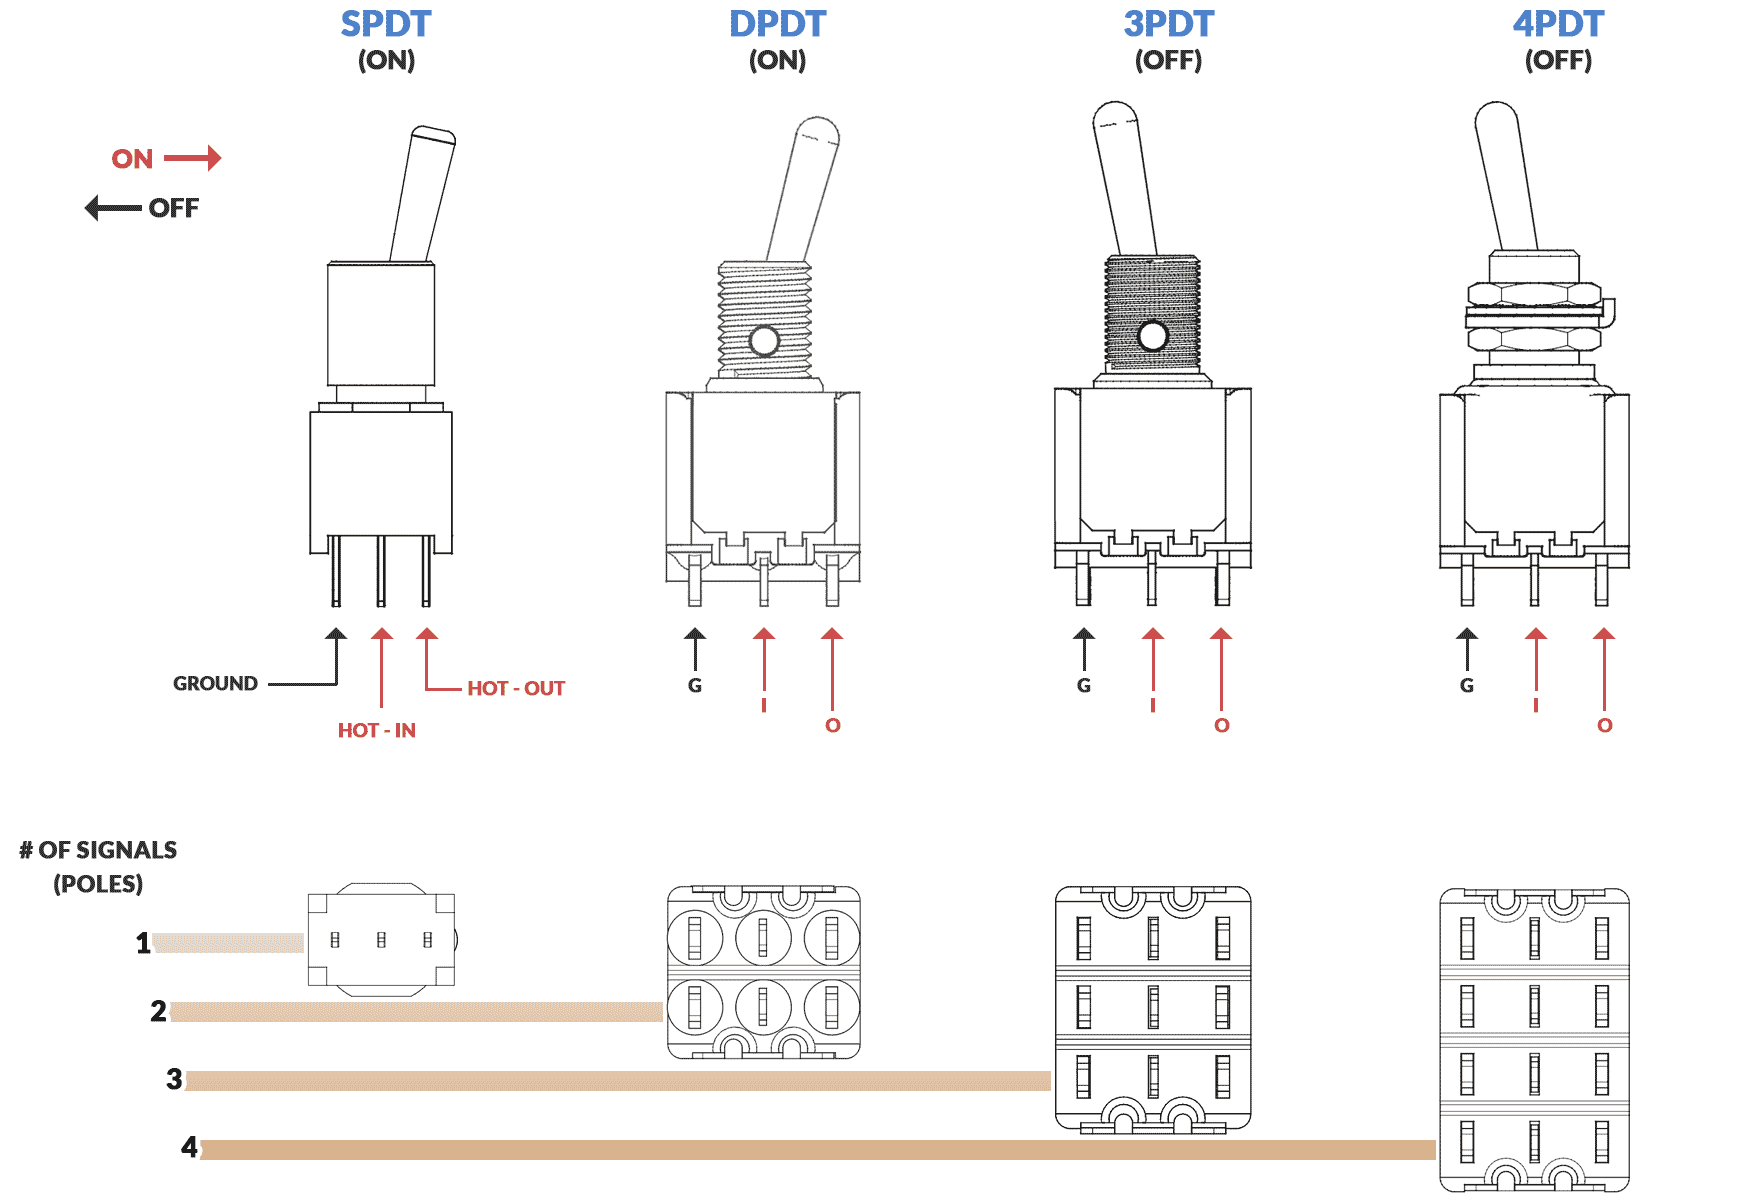 Spdt Switch Wiring Diagram : How to build a killswitch for your guitar electric herald